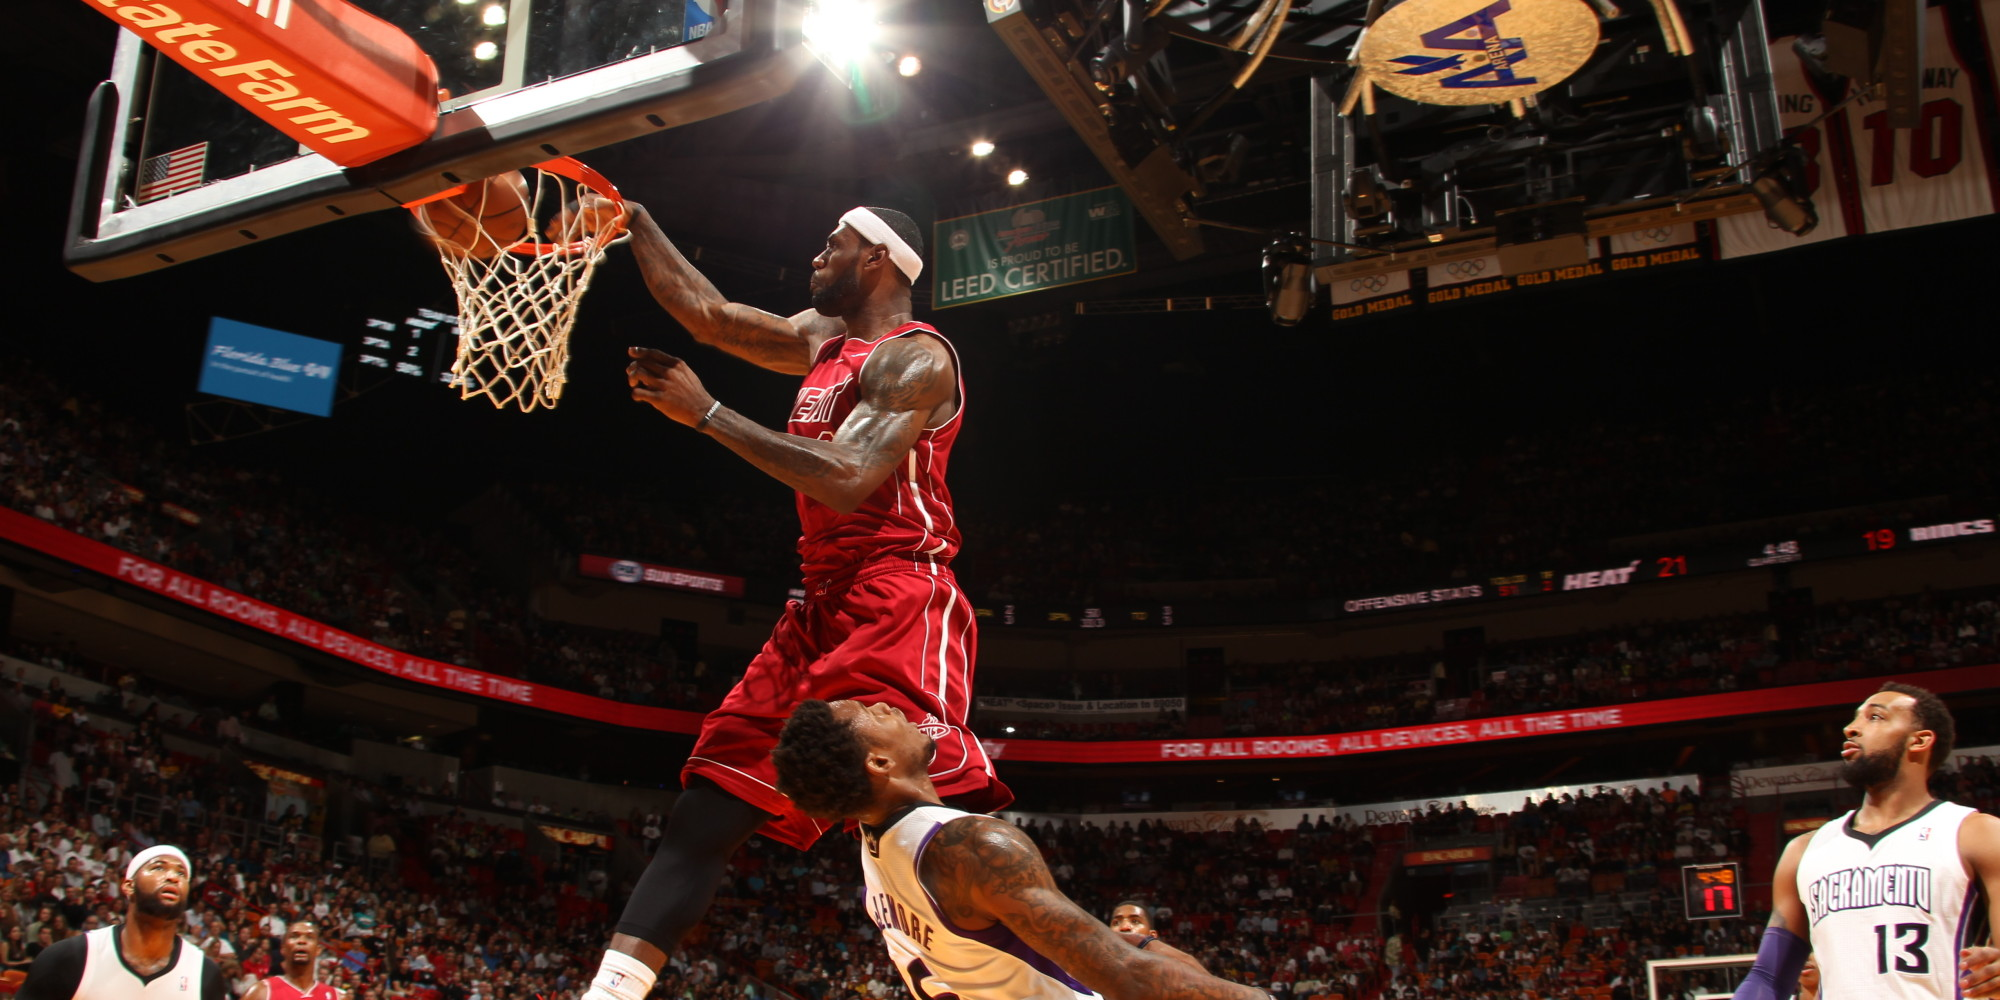 Lebron James Dunks  DiyMid.com